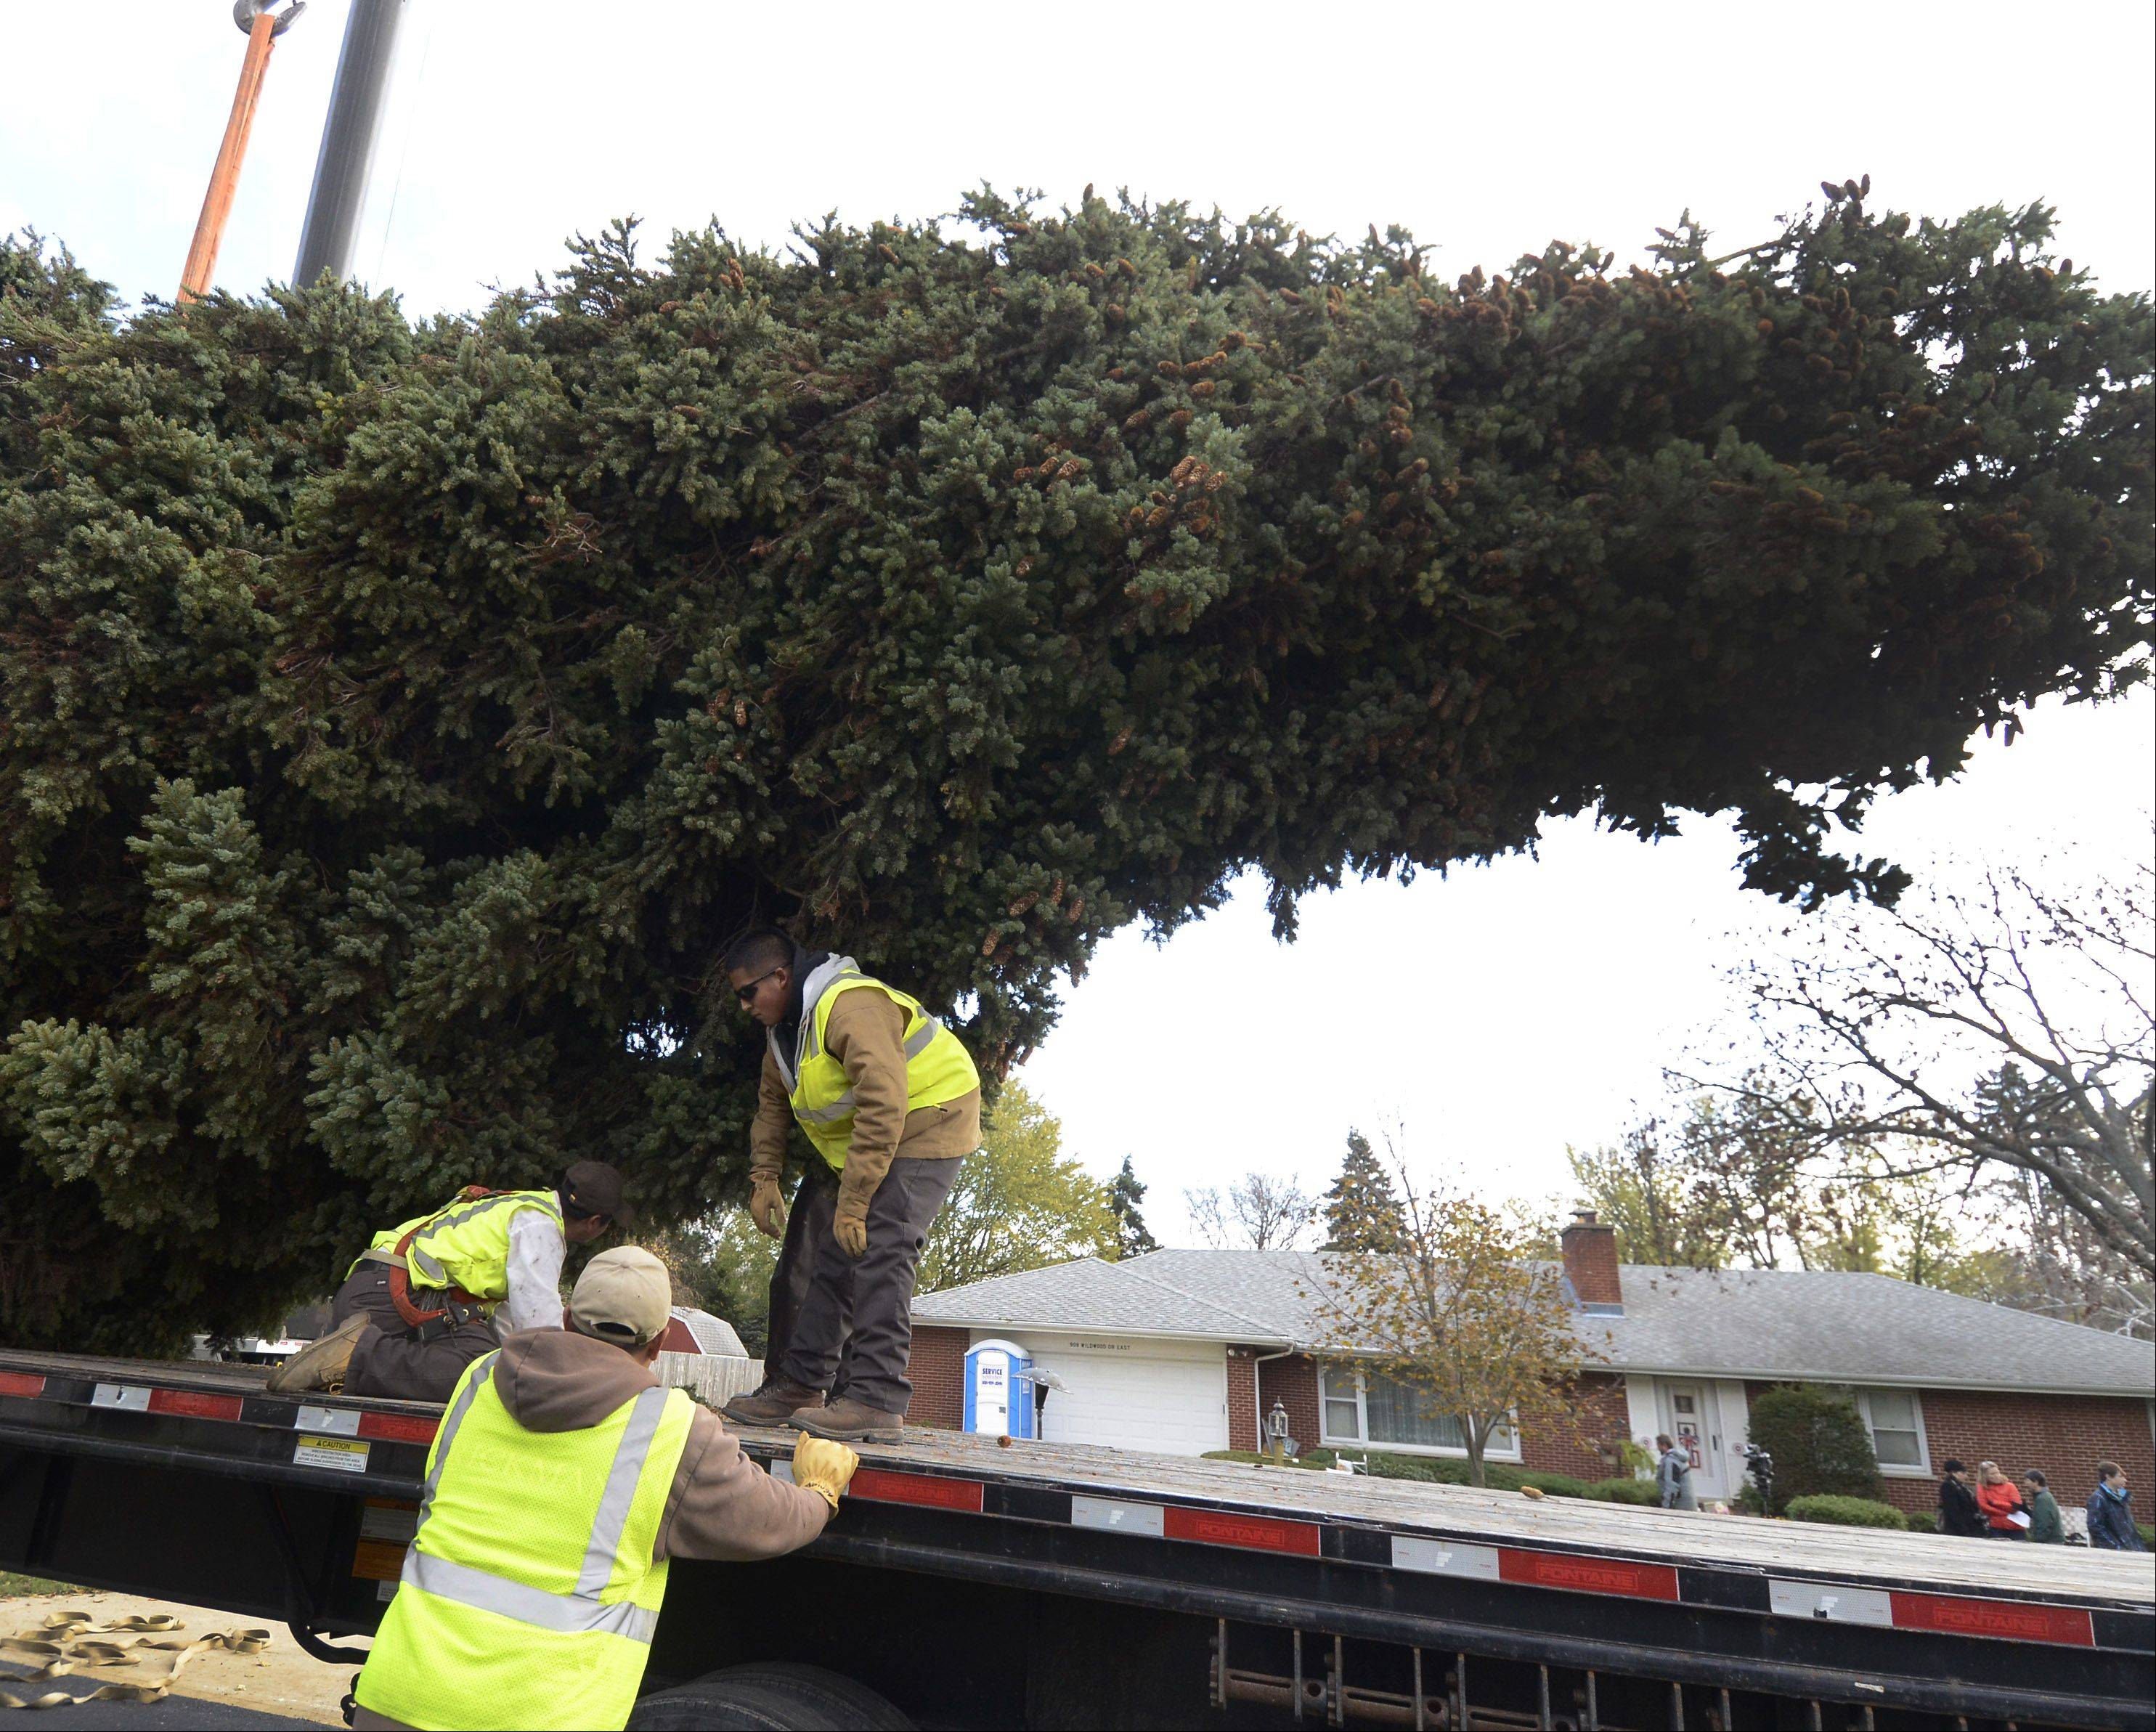 The 64-foot tall Colorado spruce tree selected to be the official Christmas tree for Daley Plaza in Chicago dwarfs workers as they secure it to a truck for the ride downtown.